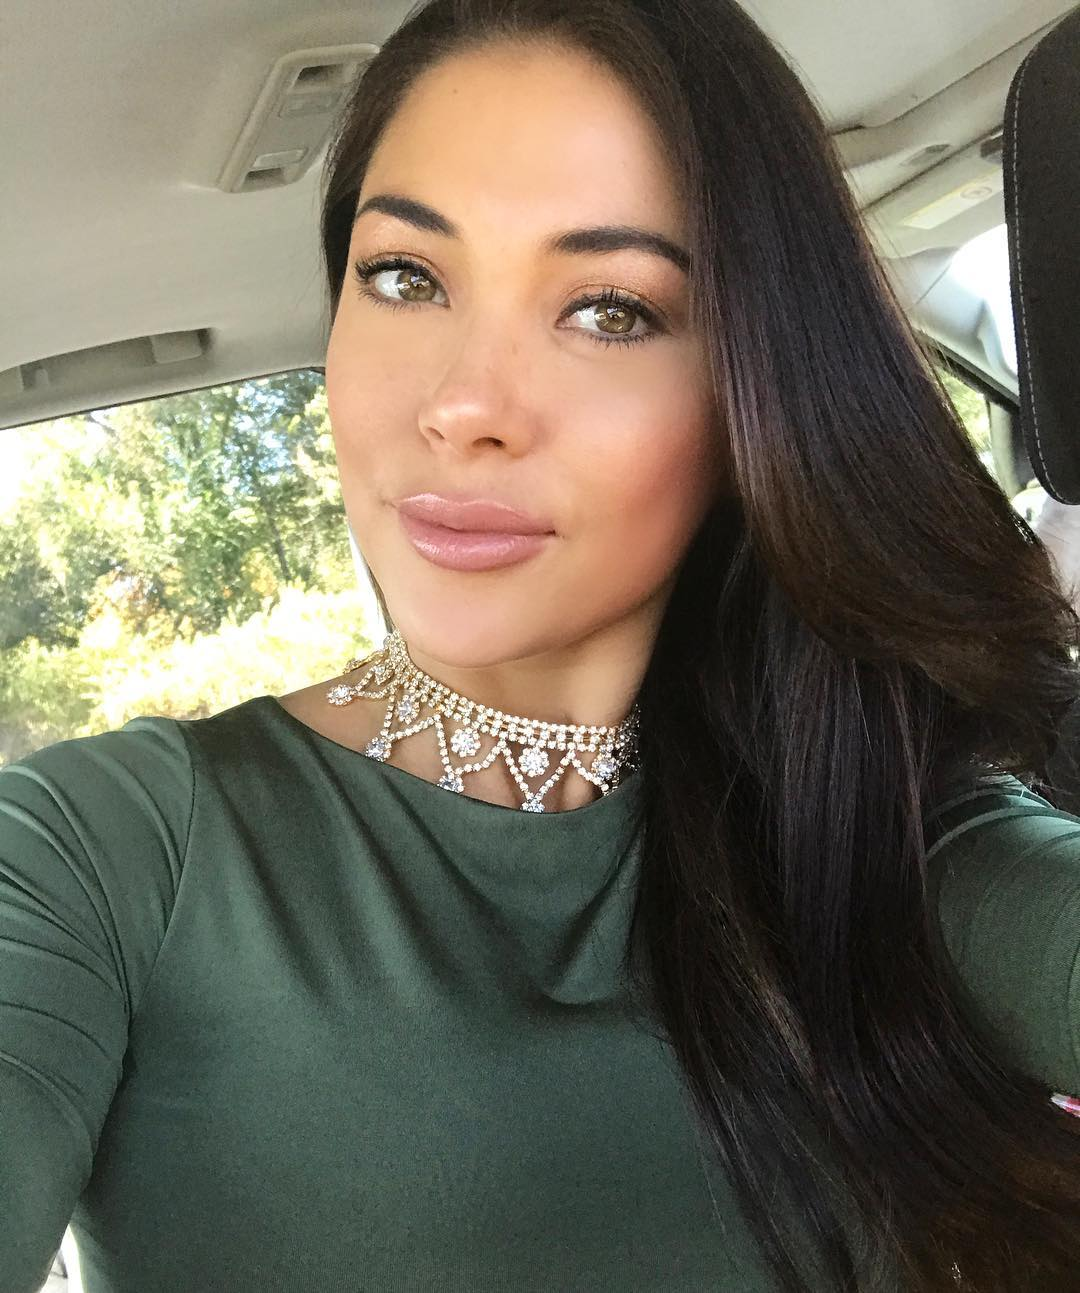 Selfie Arianny Celeste naked (35 foto and video), Sexy, Leaked, Twitter, bra 2019